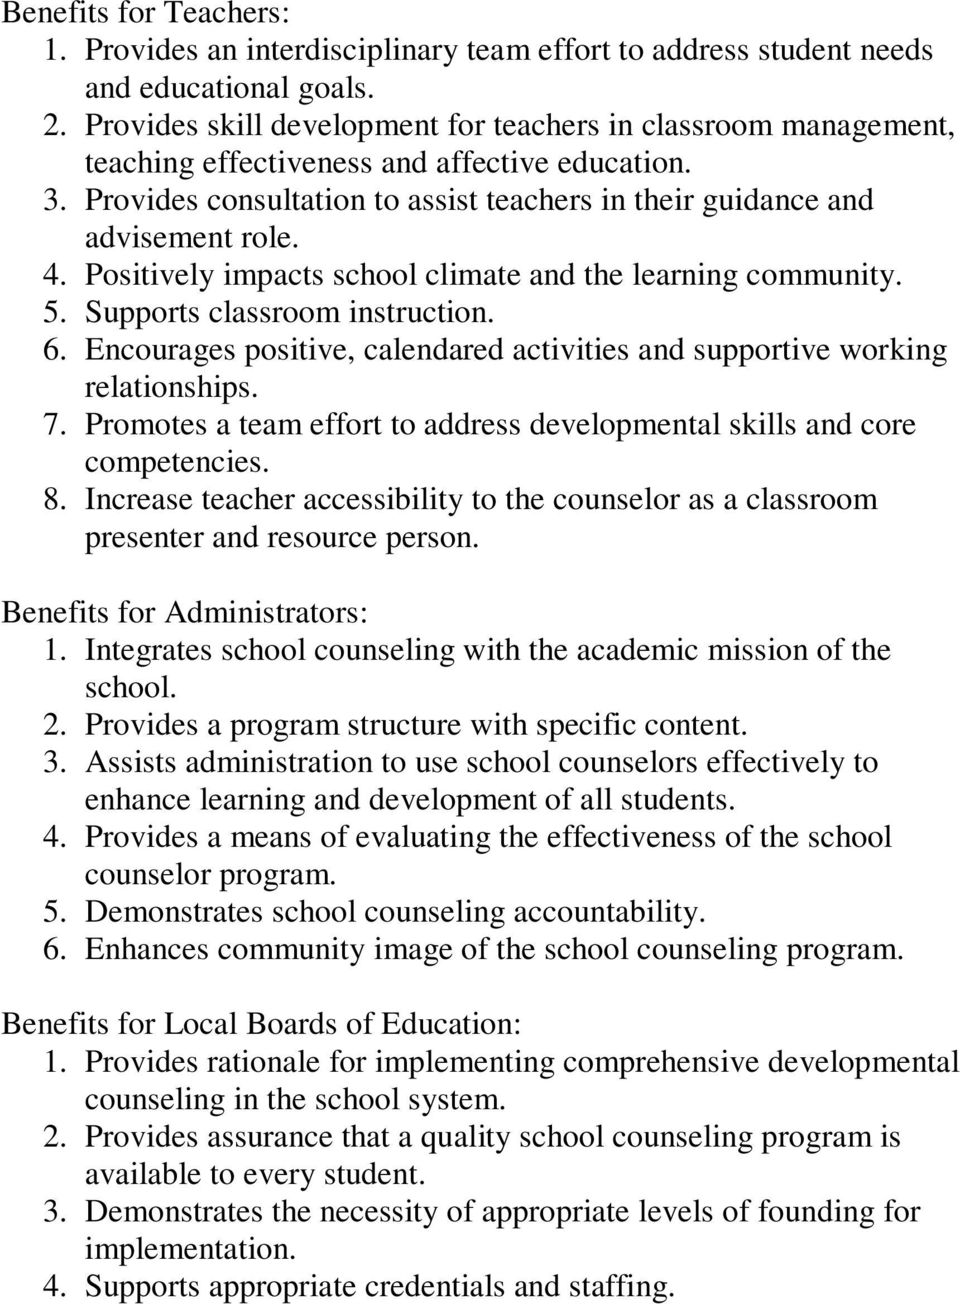 Positively impacts school climate and the learning community. 5. Supports classroom instruction. 6. Encourages positive, calendared activities and supportive working relationships. 7.